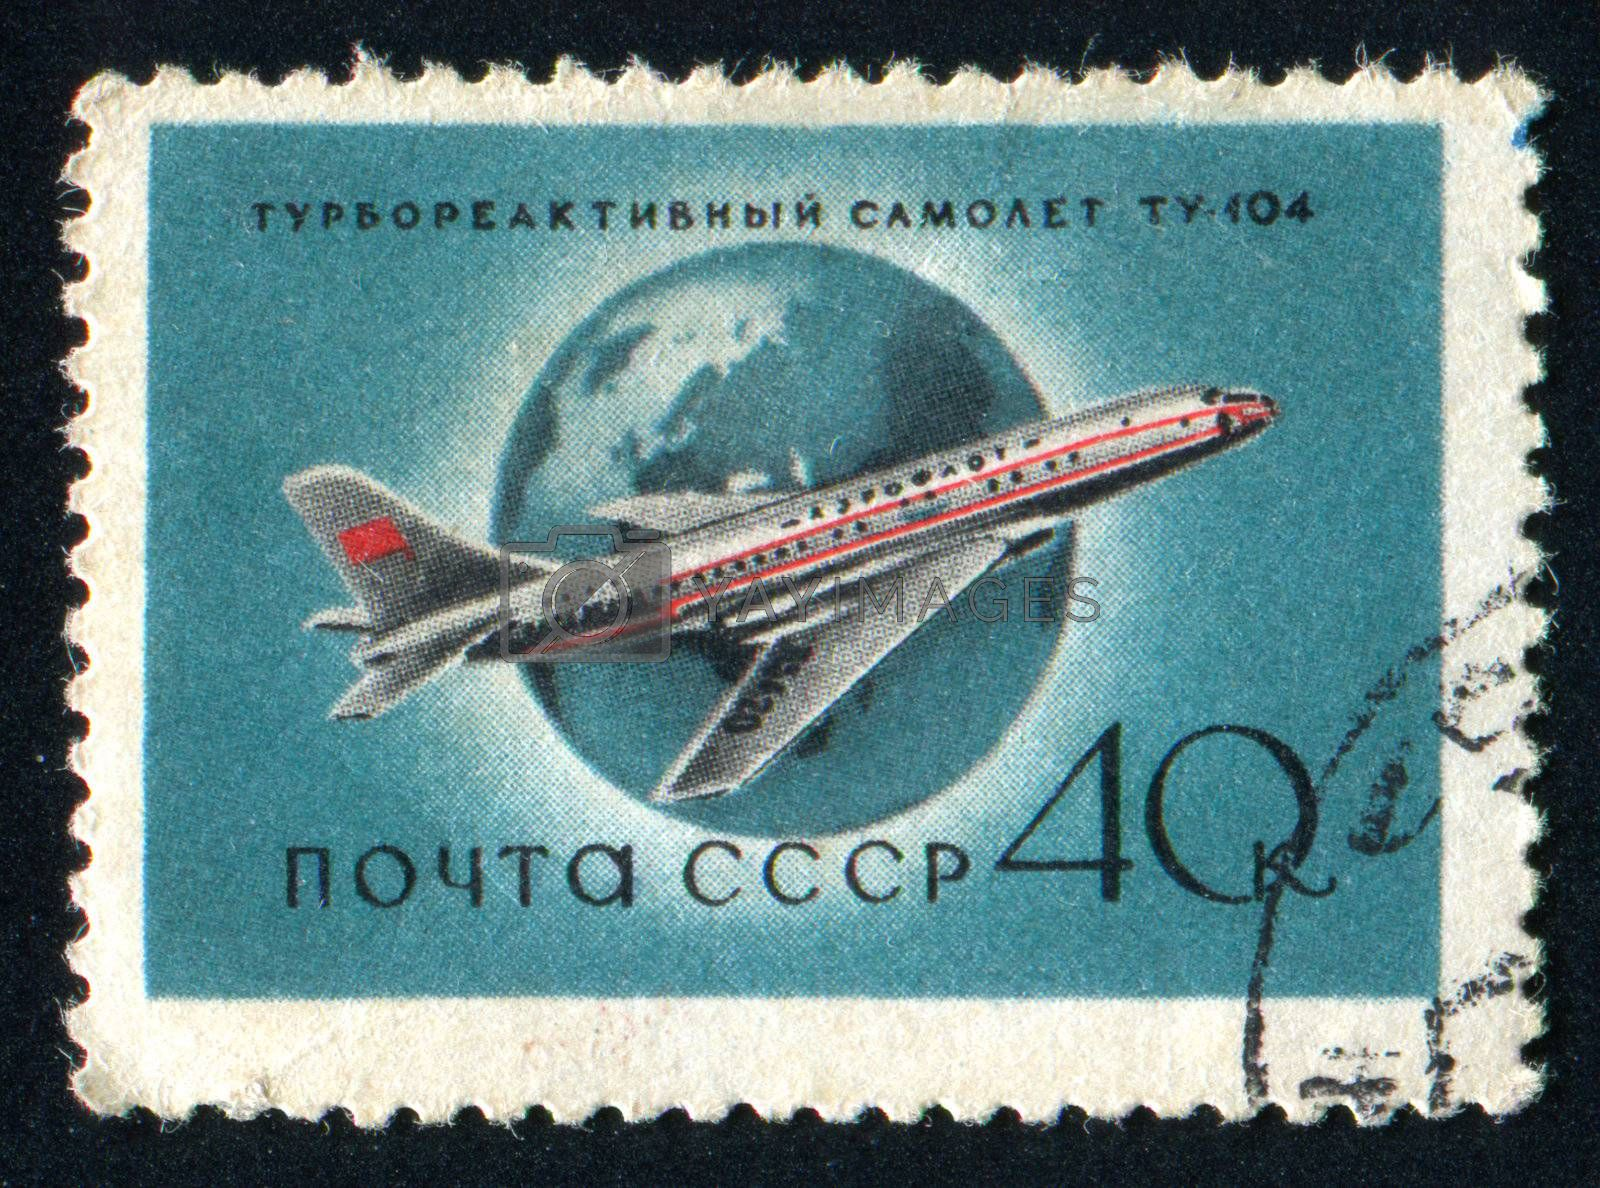 RUSSIA - CIRCA 1958: stamp printed by Russia, shows Airliner, circa 1958.